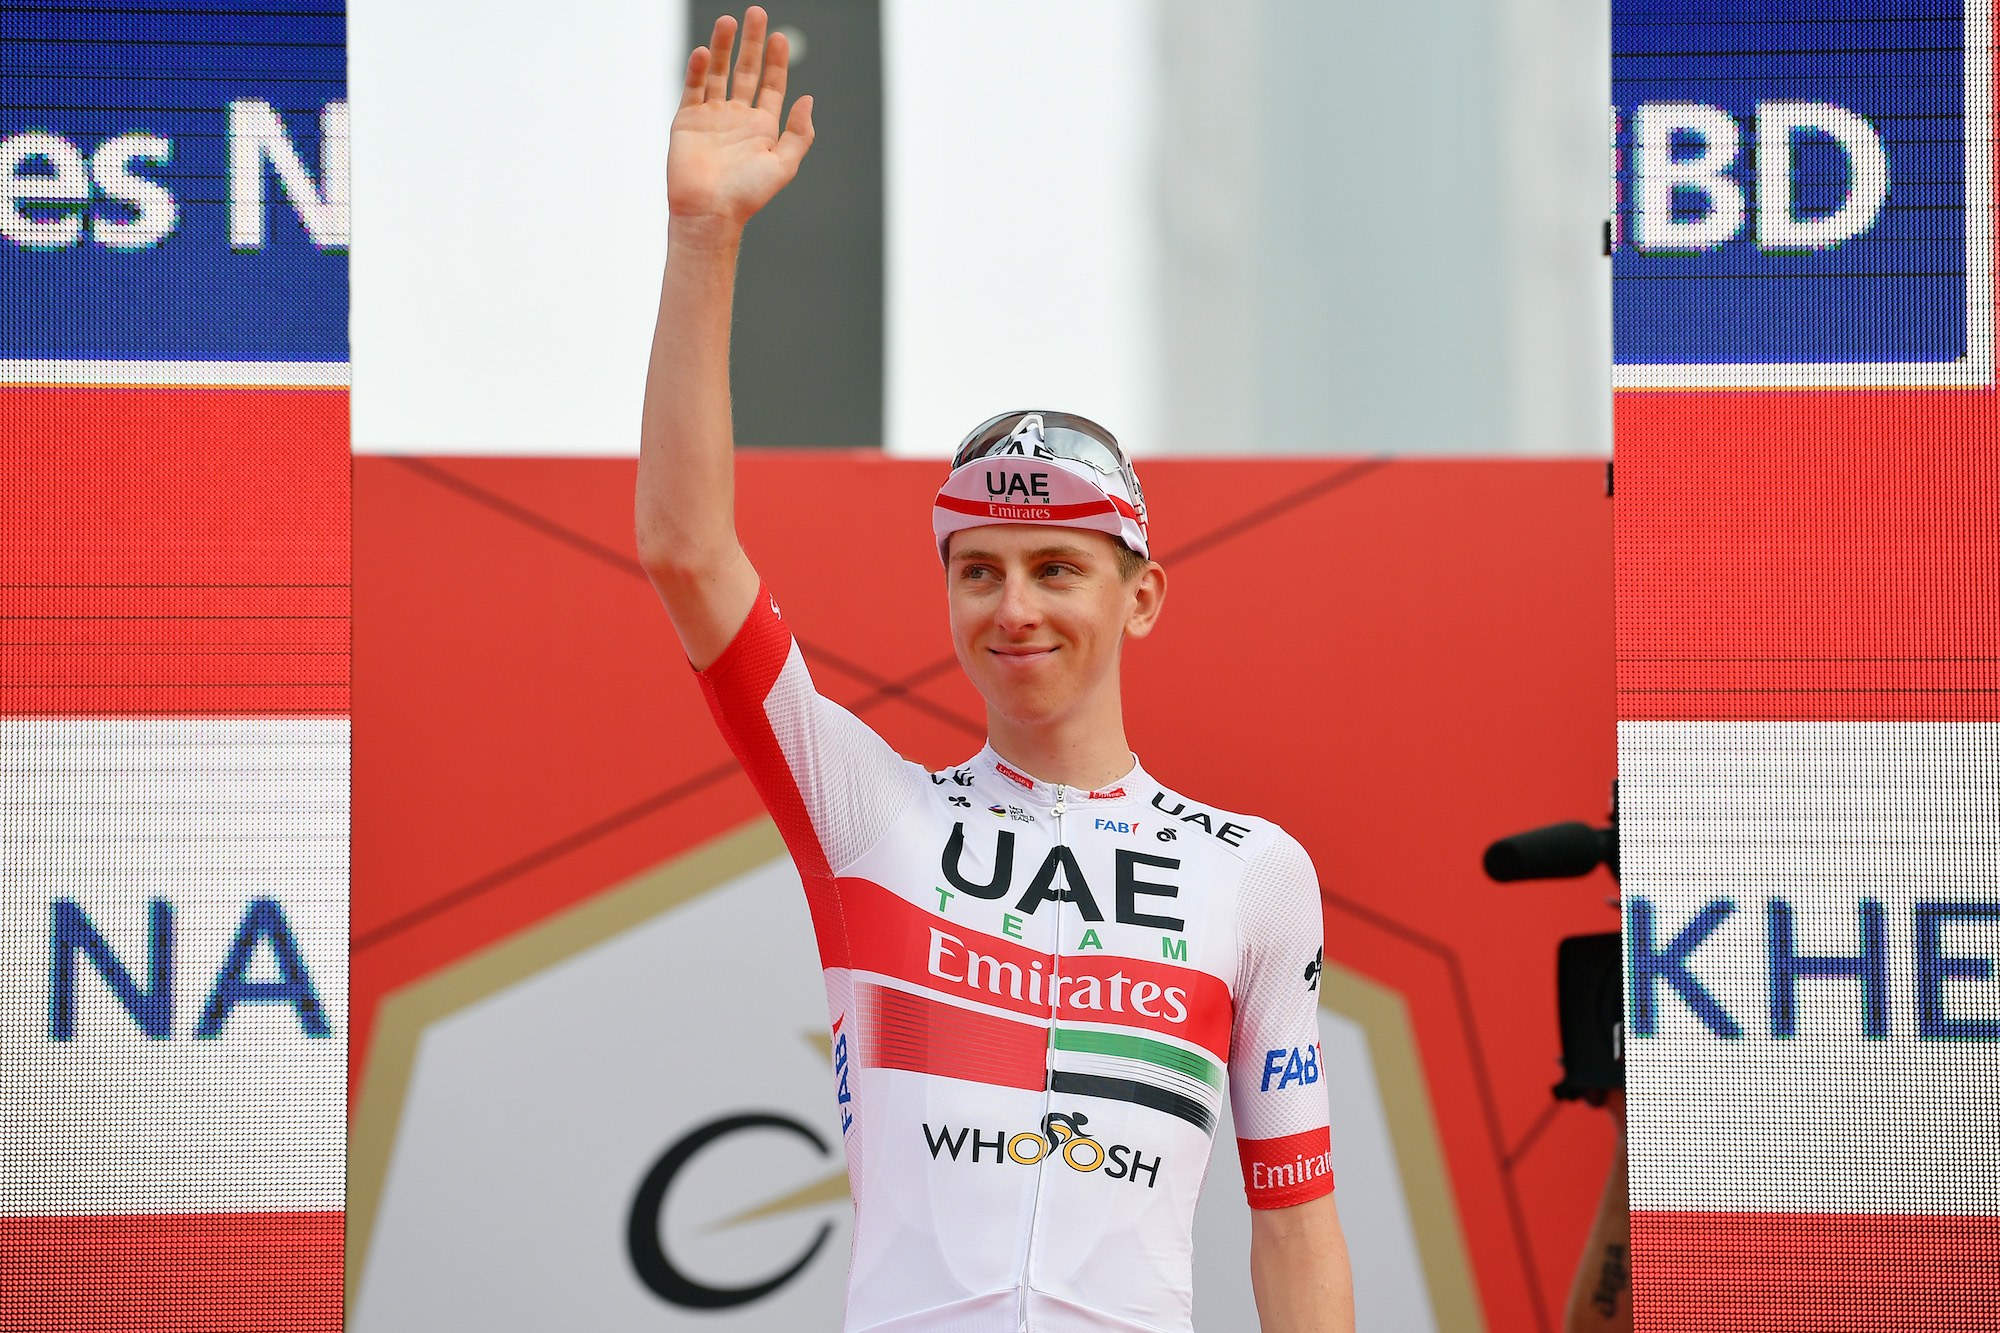 Tadej Pogačar narrowly takes victory from Lutsenko on stage five of the UAE Tour 2020 - Cycling Weekly